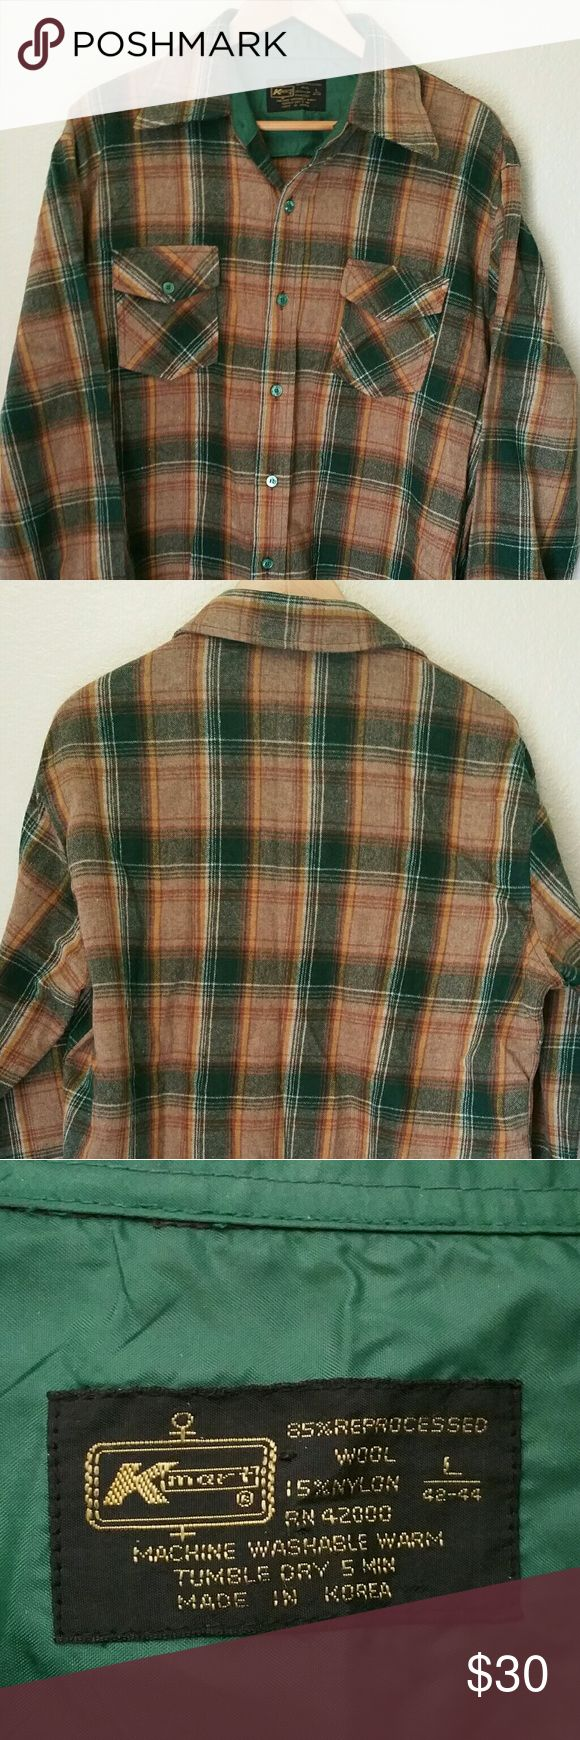 Vintage Men's Wool Kmart Shirt L This green and brown plaid shirt is from the 1960's.  It is in excellent condition with not stains, holes or rips.  It's is sized large, but measurements can be provided if needed. Thank you for looking and happy shopping! Kmart Shirts Casual Button Down Shirts